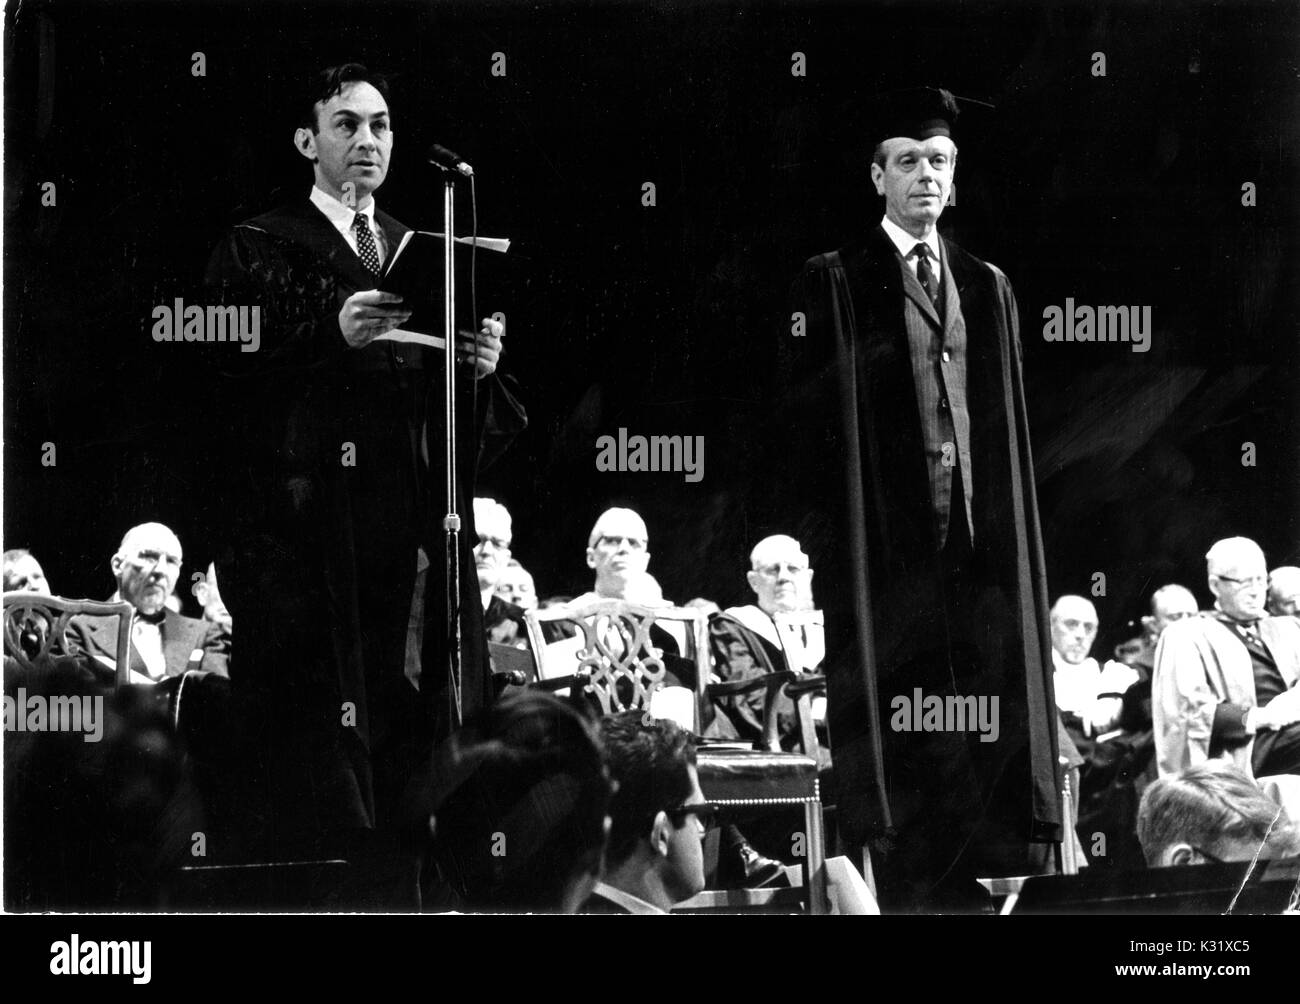 Harry Woolf, department chairman for the History of Science at Johns Hopkins University, presents an award to United States Army officer James McCormack during the university's commemoration day, celebrating the university's founding, in Baltimore, Maryland, February 22, 1966. - Stock Image